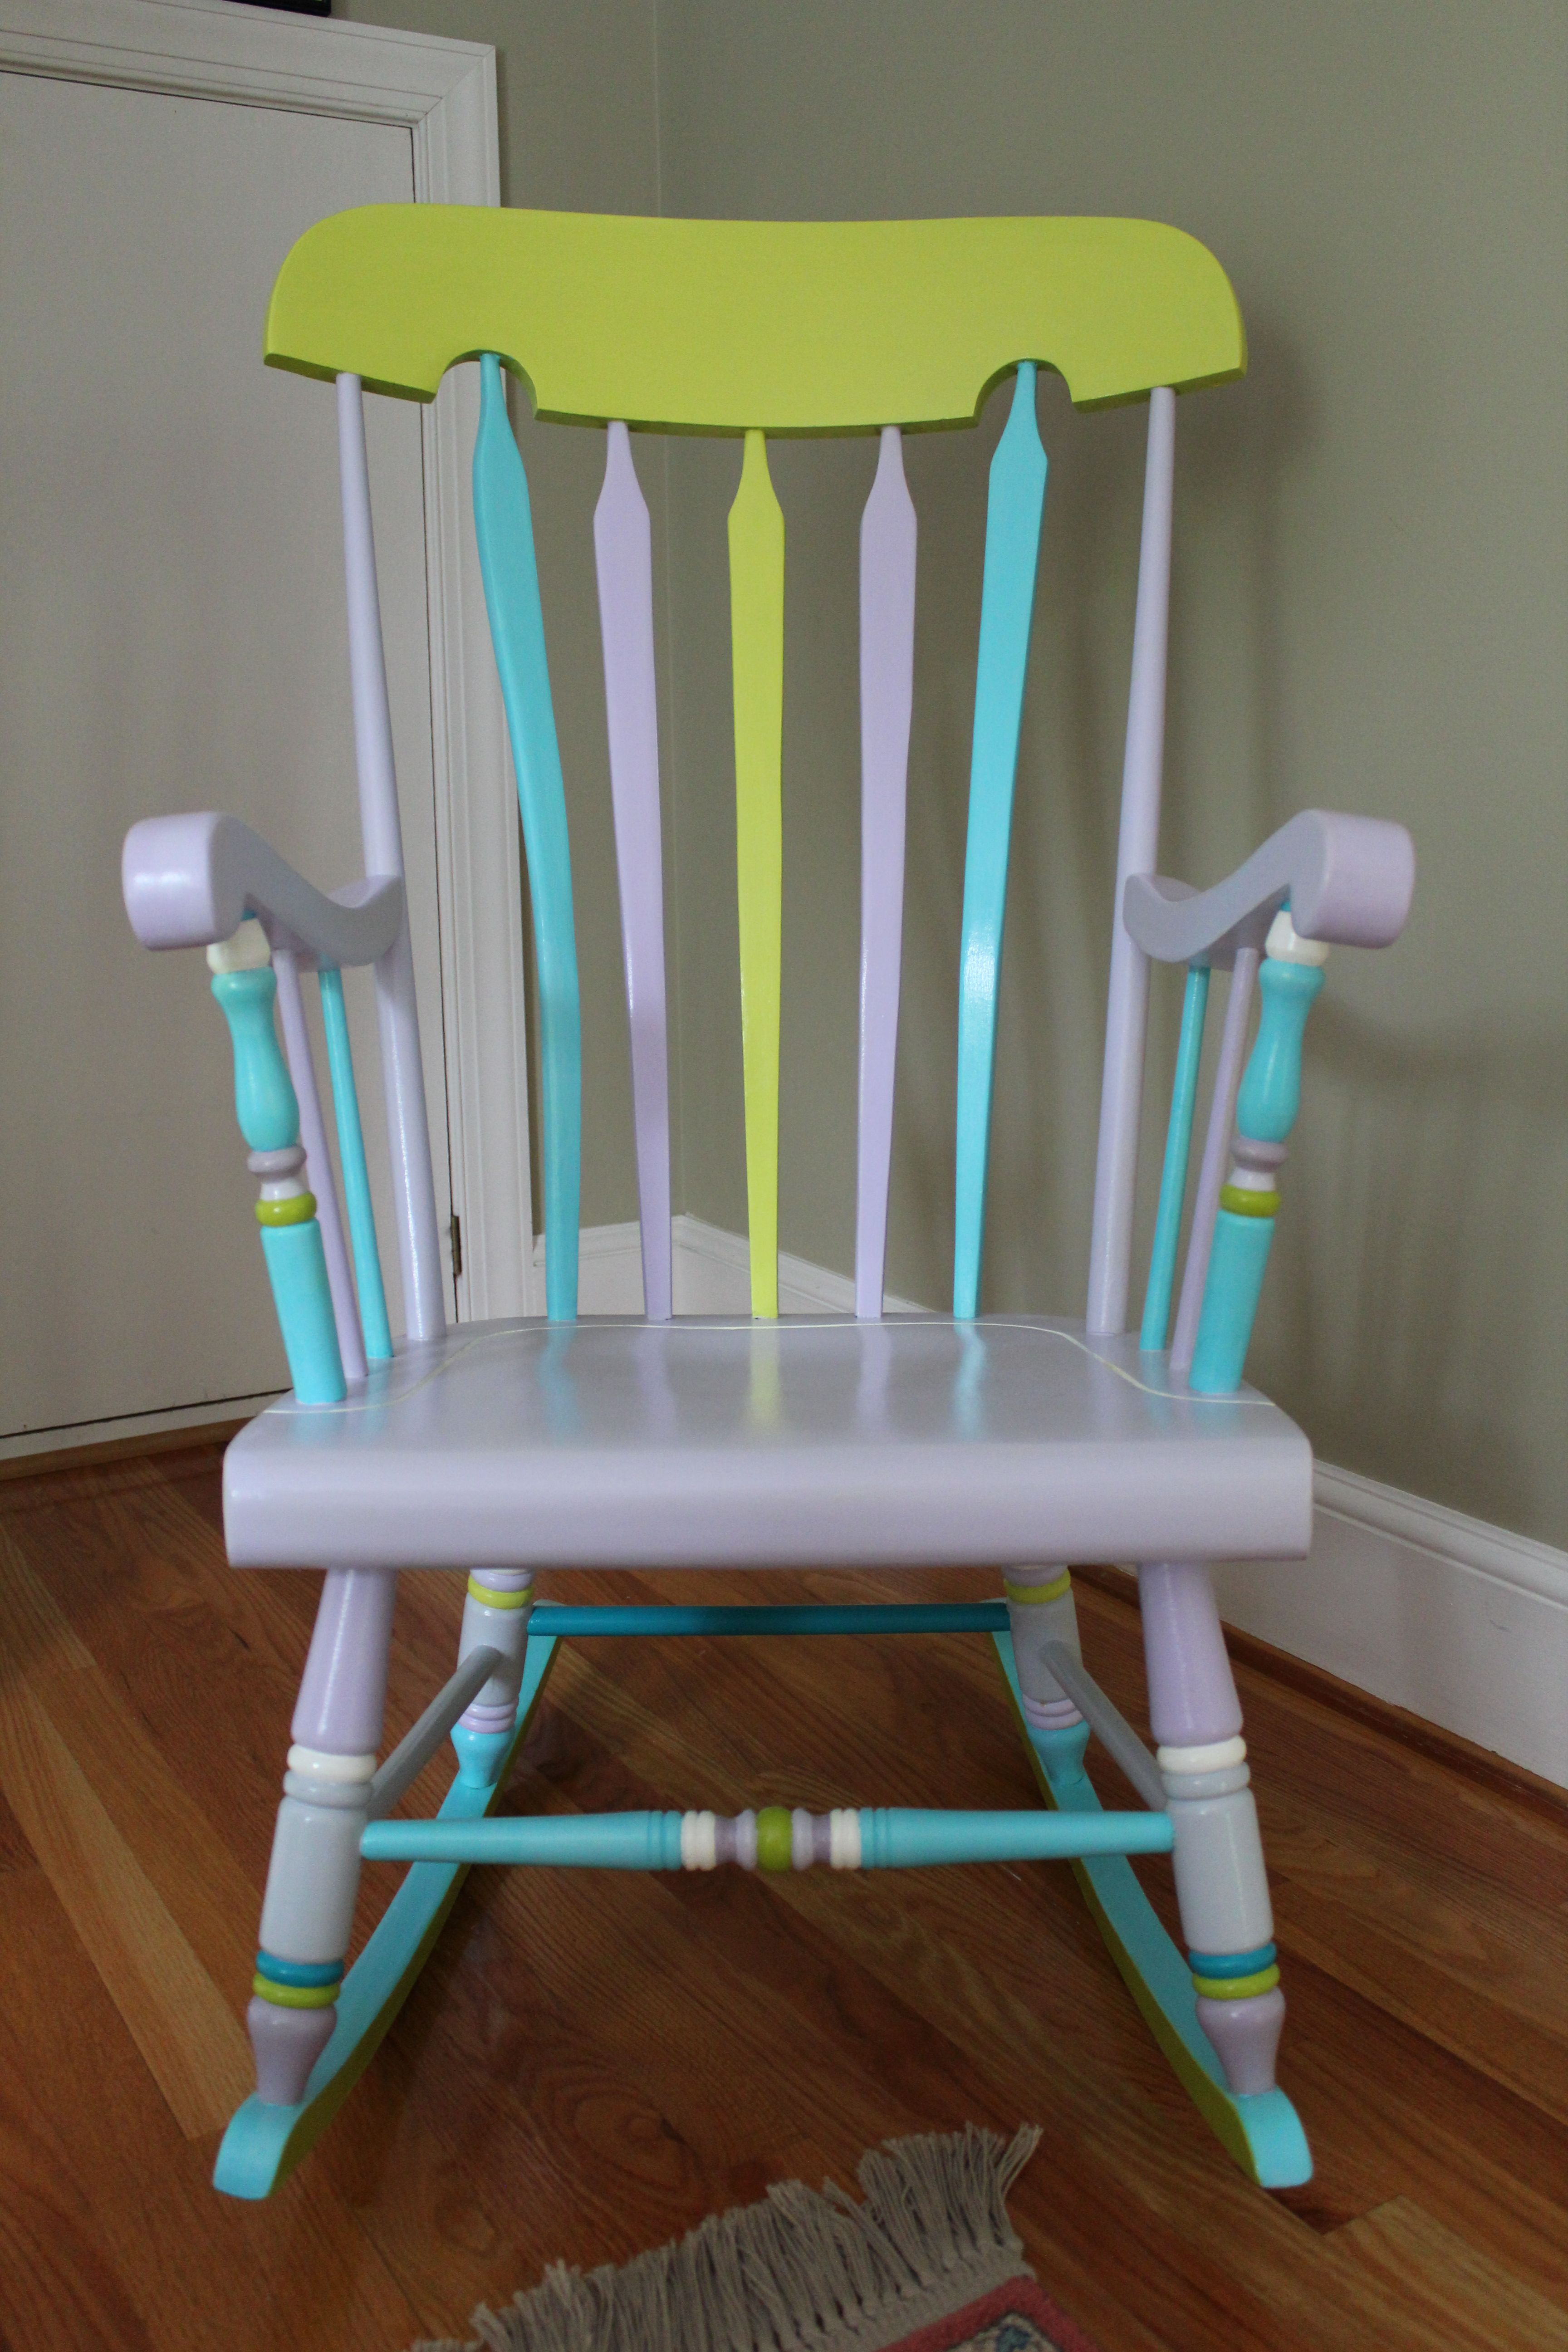 Awesome A Rocking Chair I Got When My Daughter Was Born 28 Years Ago. It Was